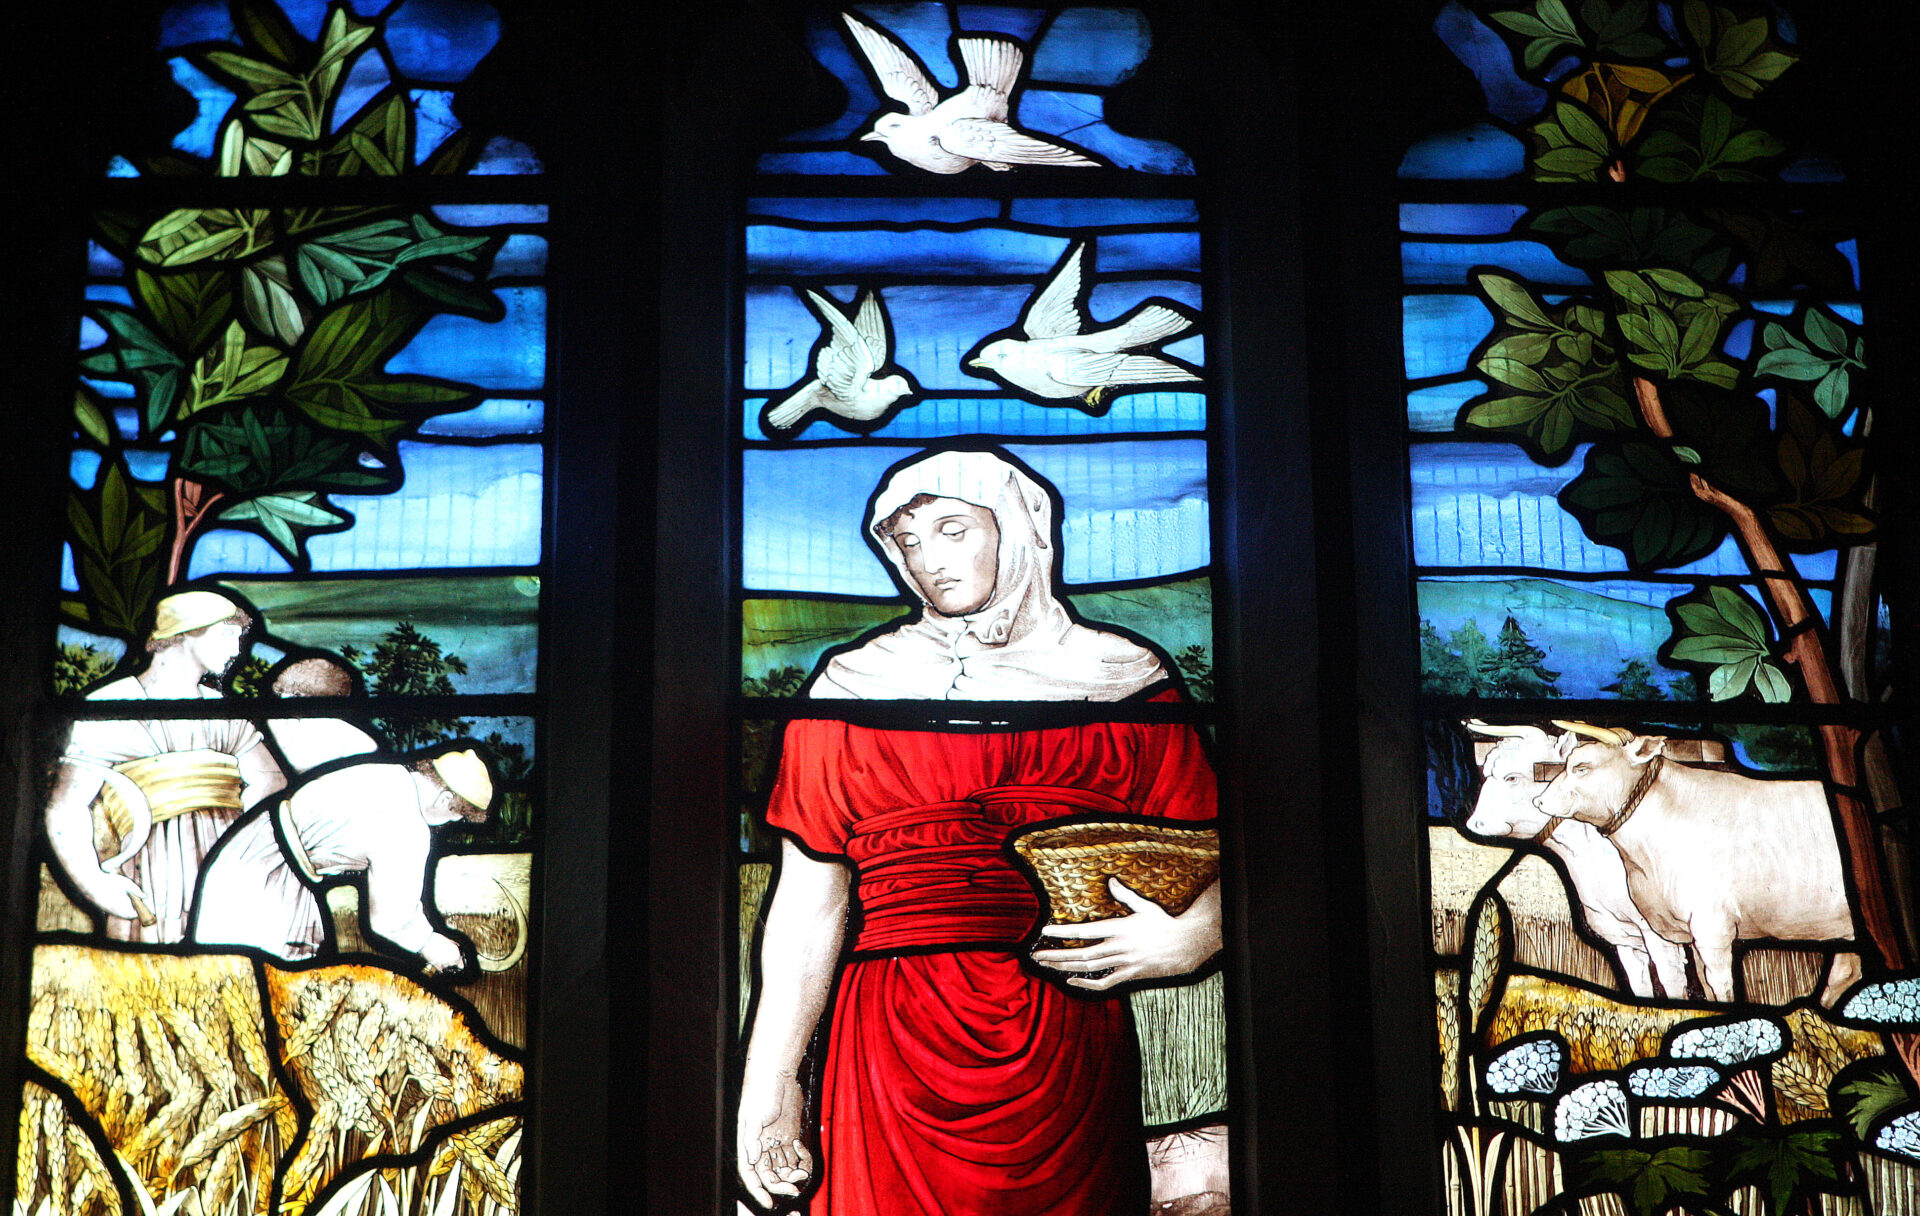 Jump off the bus at Lydford and see this fabulous stained glass window in St. Petroc's church.